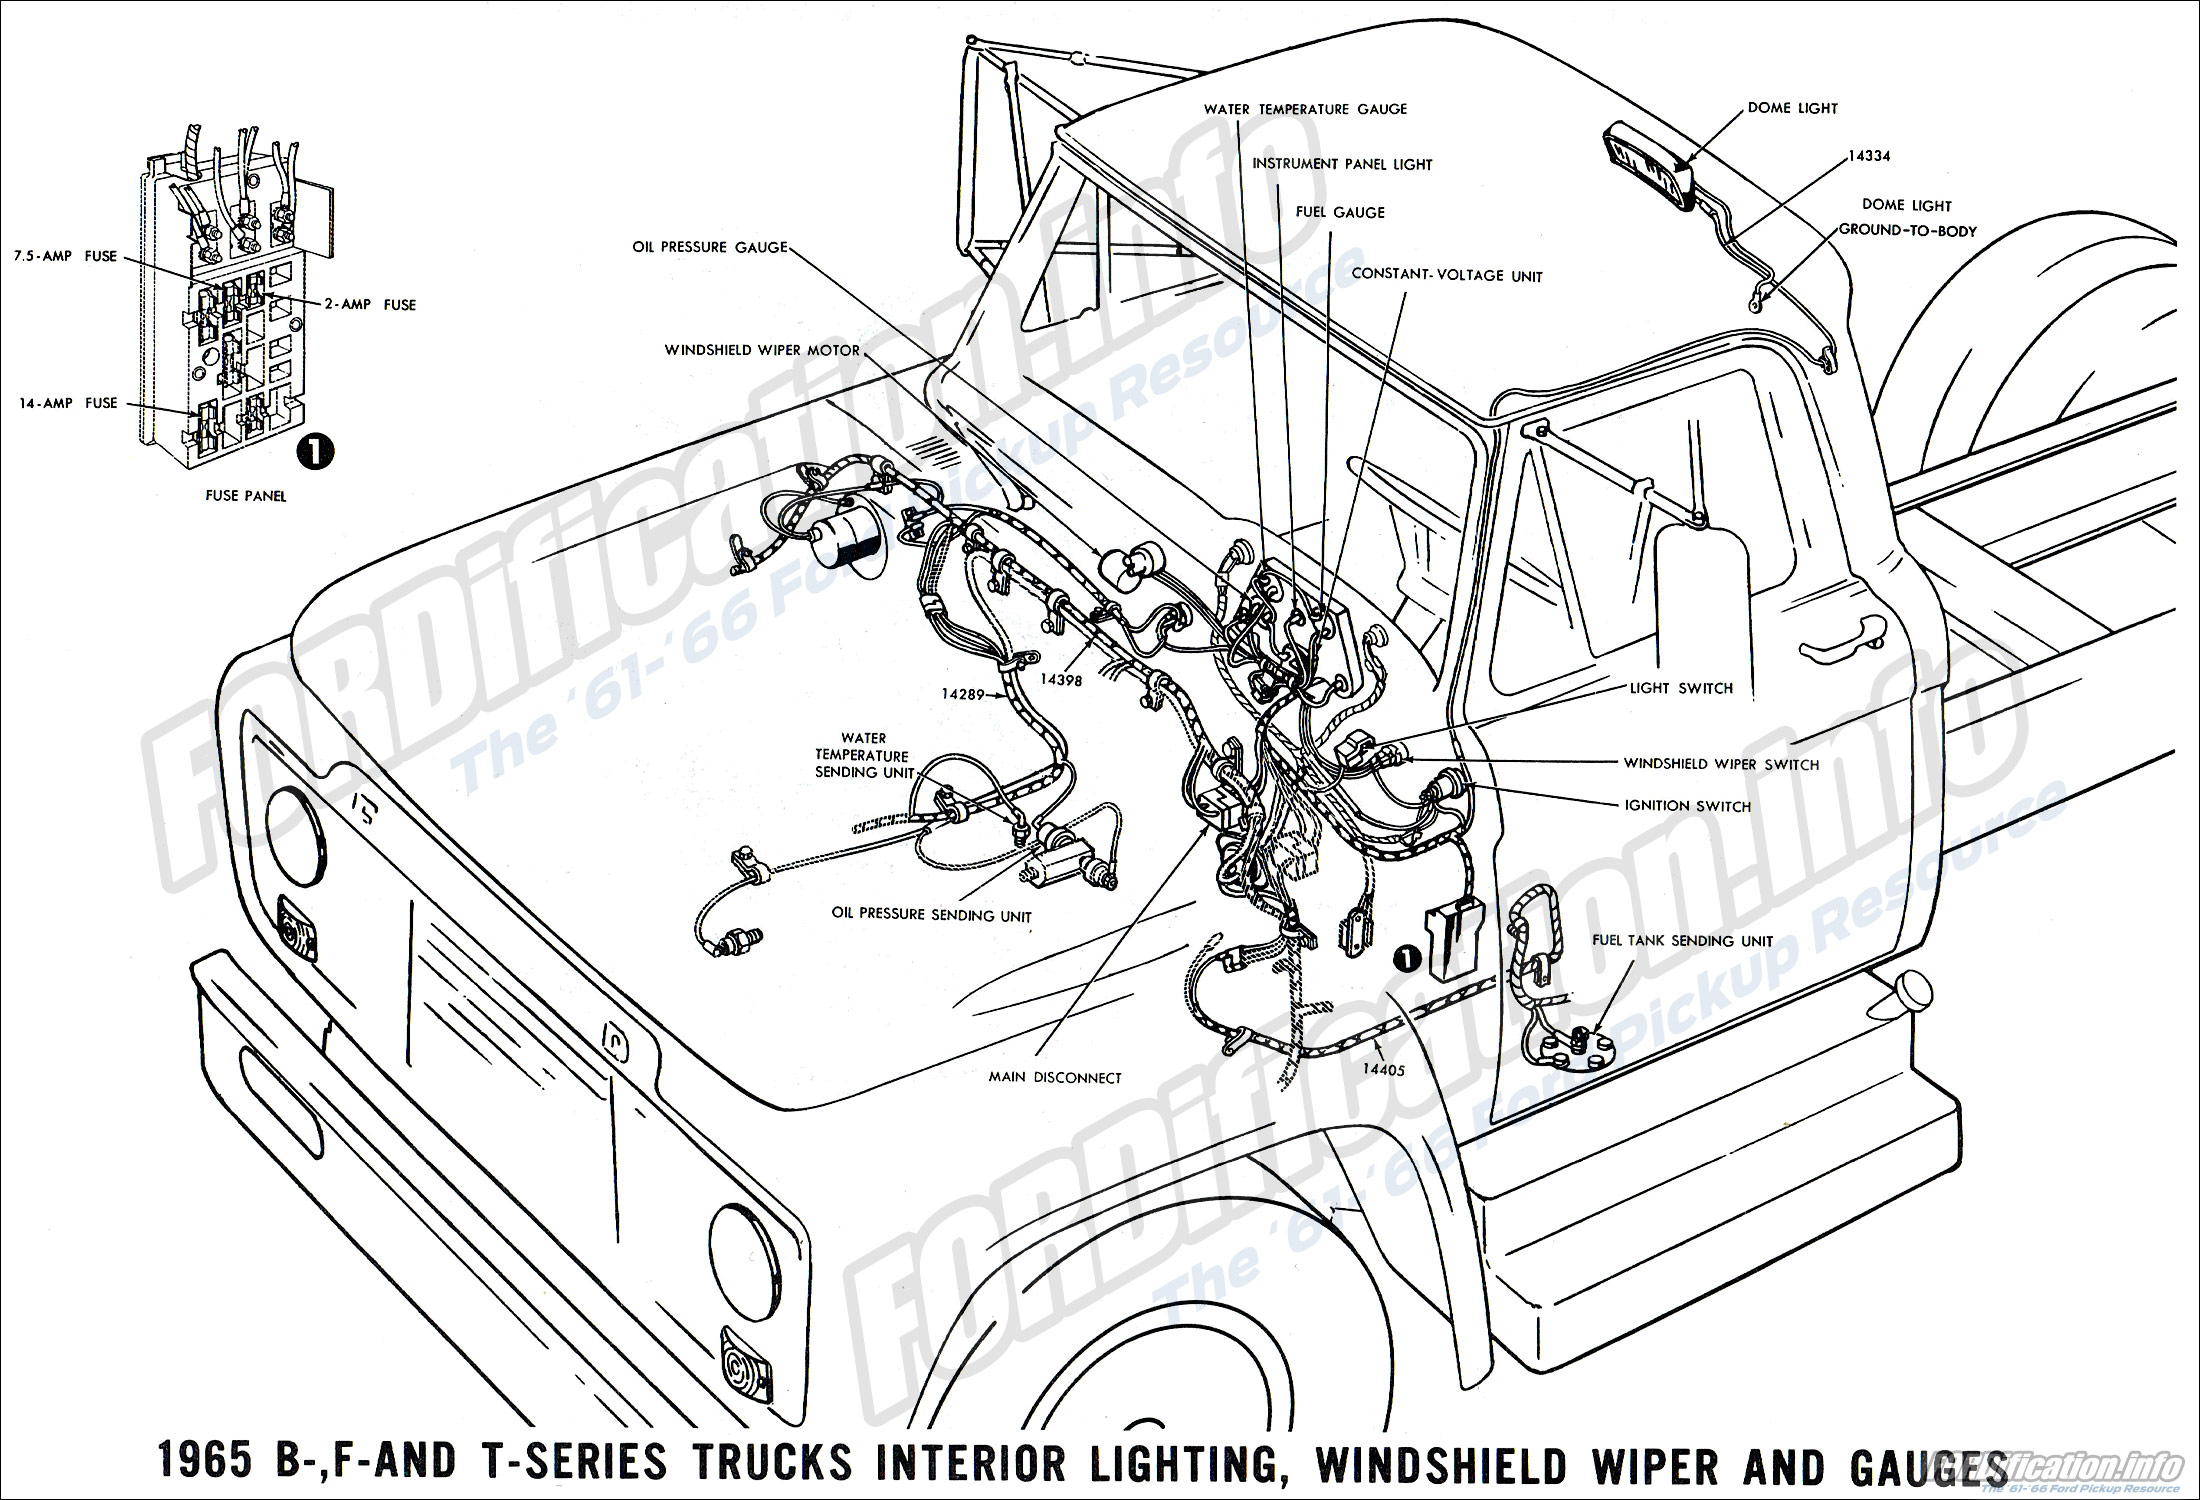 1965 ford truck wiring diagrams - fordification.info - the ... 1965 ford econoline wiring diagram bing